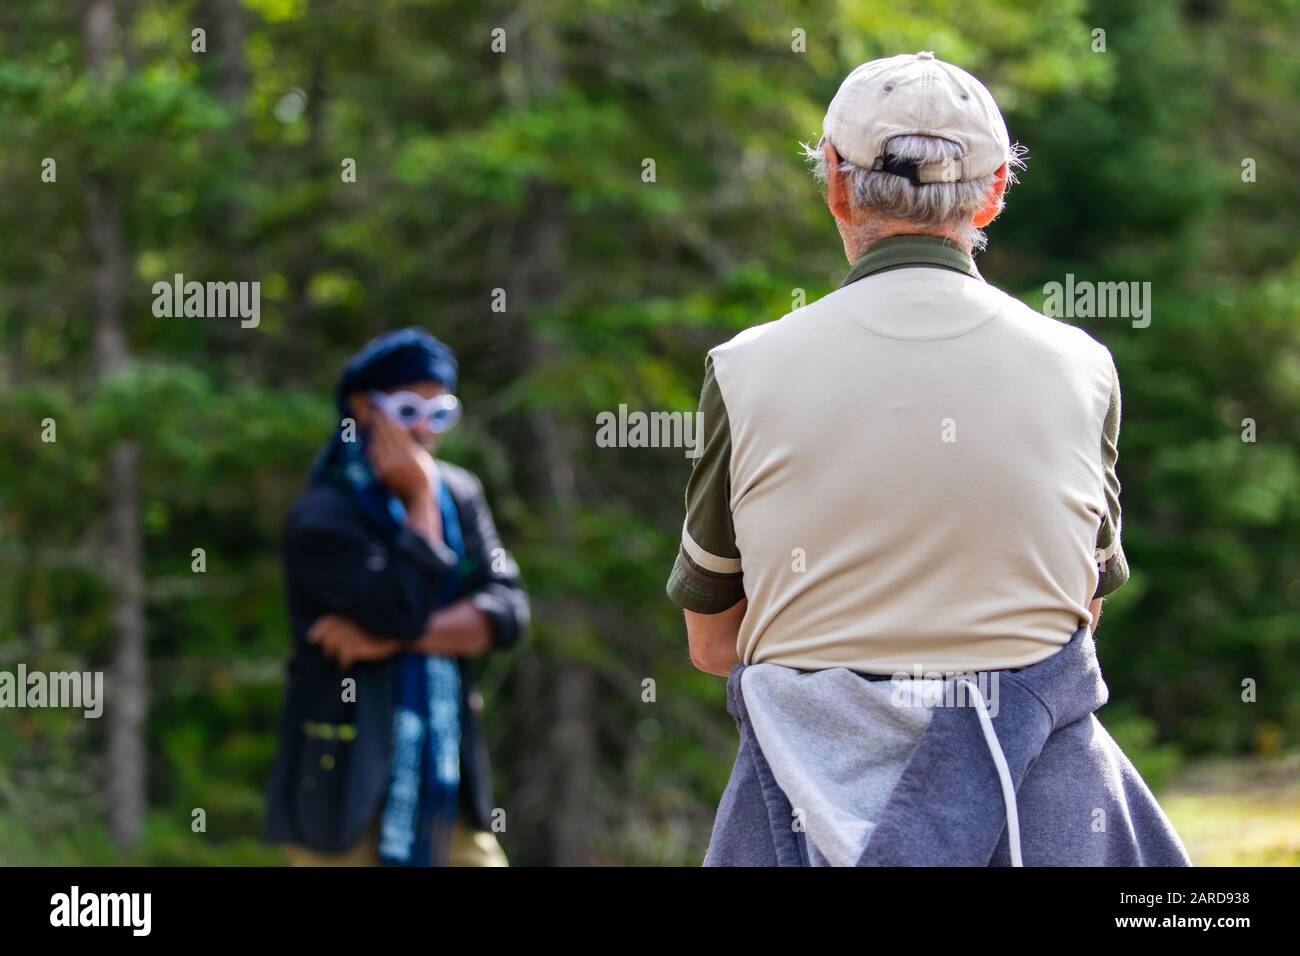 Closeup rear view of man looking at fashionable stylish man wearing sunglasses and scarf while standing against trees in forest during vacation Stock Photo